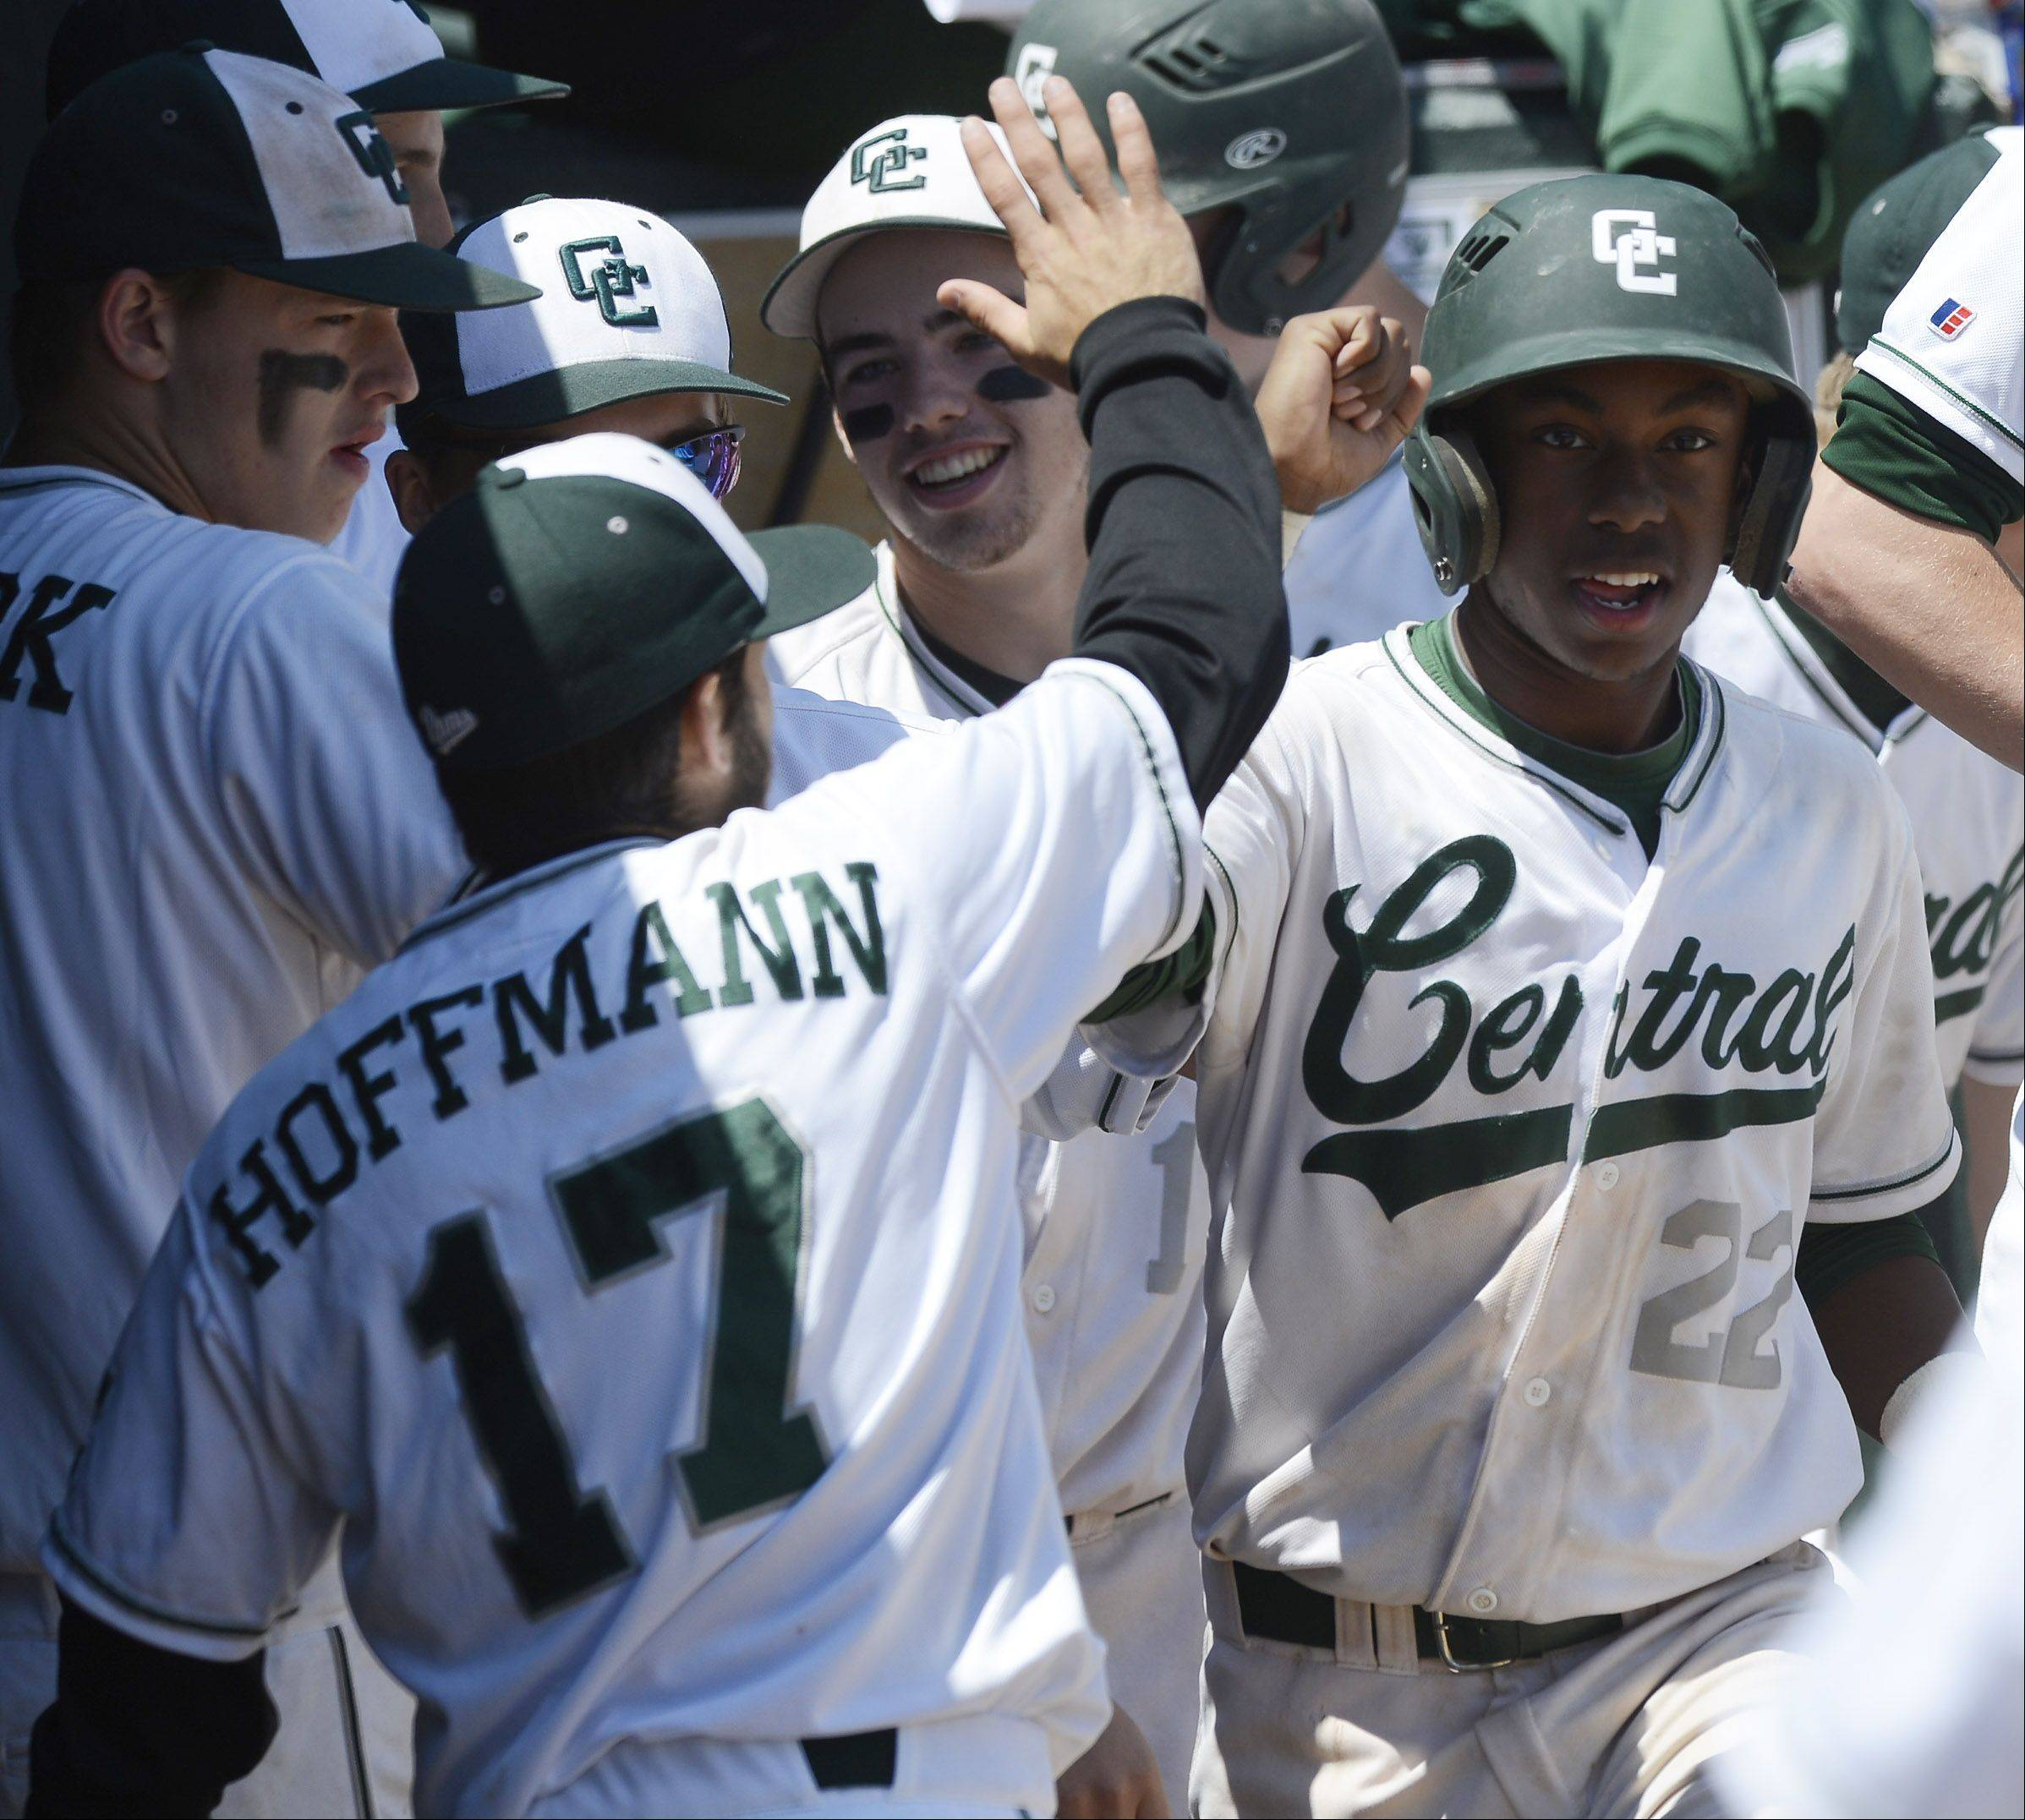 Grayslake Central's Sterling Dixon is greeted by teammates in the dugout after scoring in the sixth inning during the Class 3A state baseball semifinal against St. Francis at Silver Cross Field in Joliet Friday.